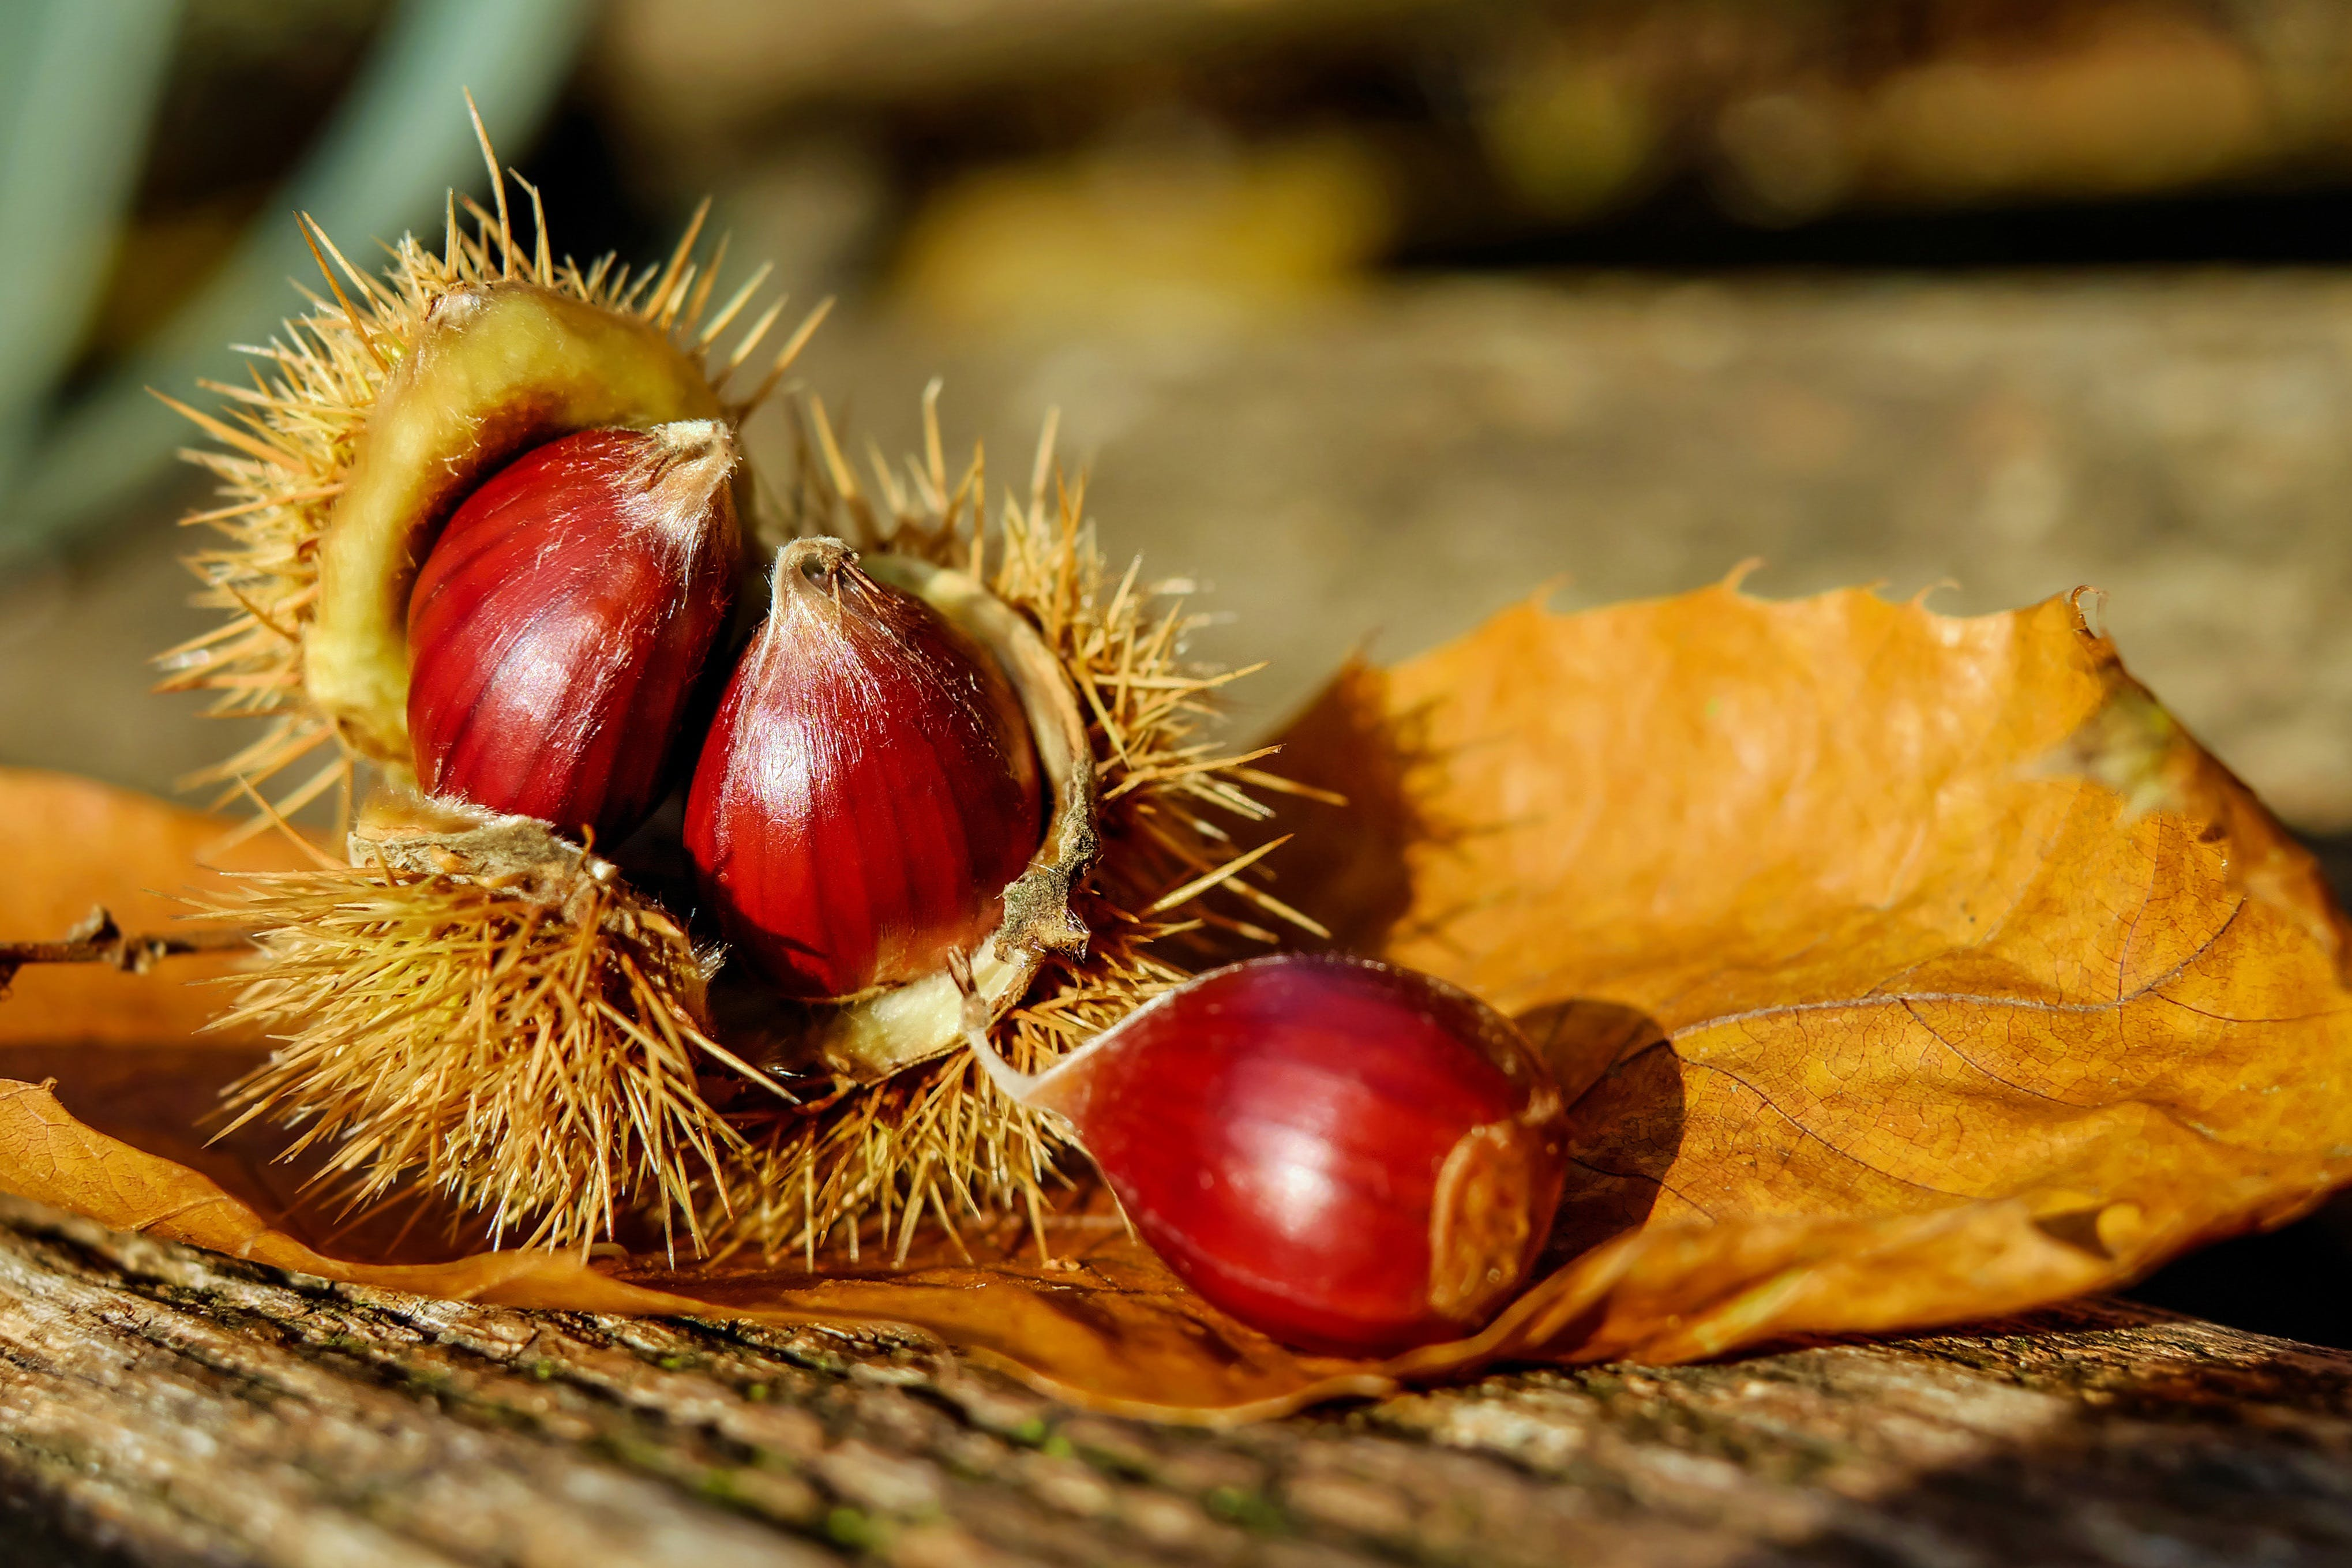 blurred background, chestnuts, close-up